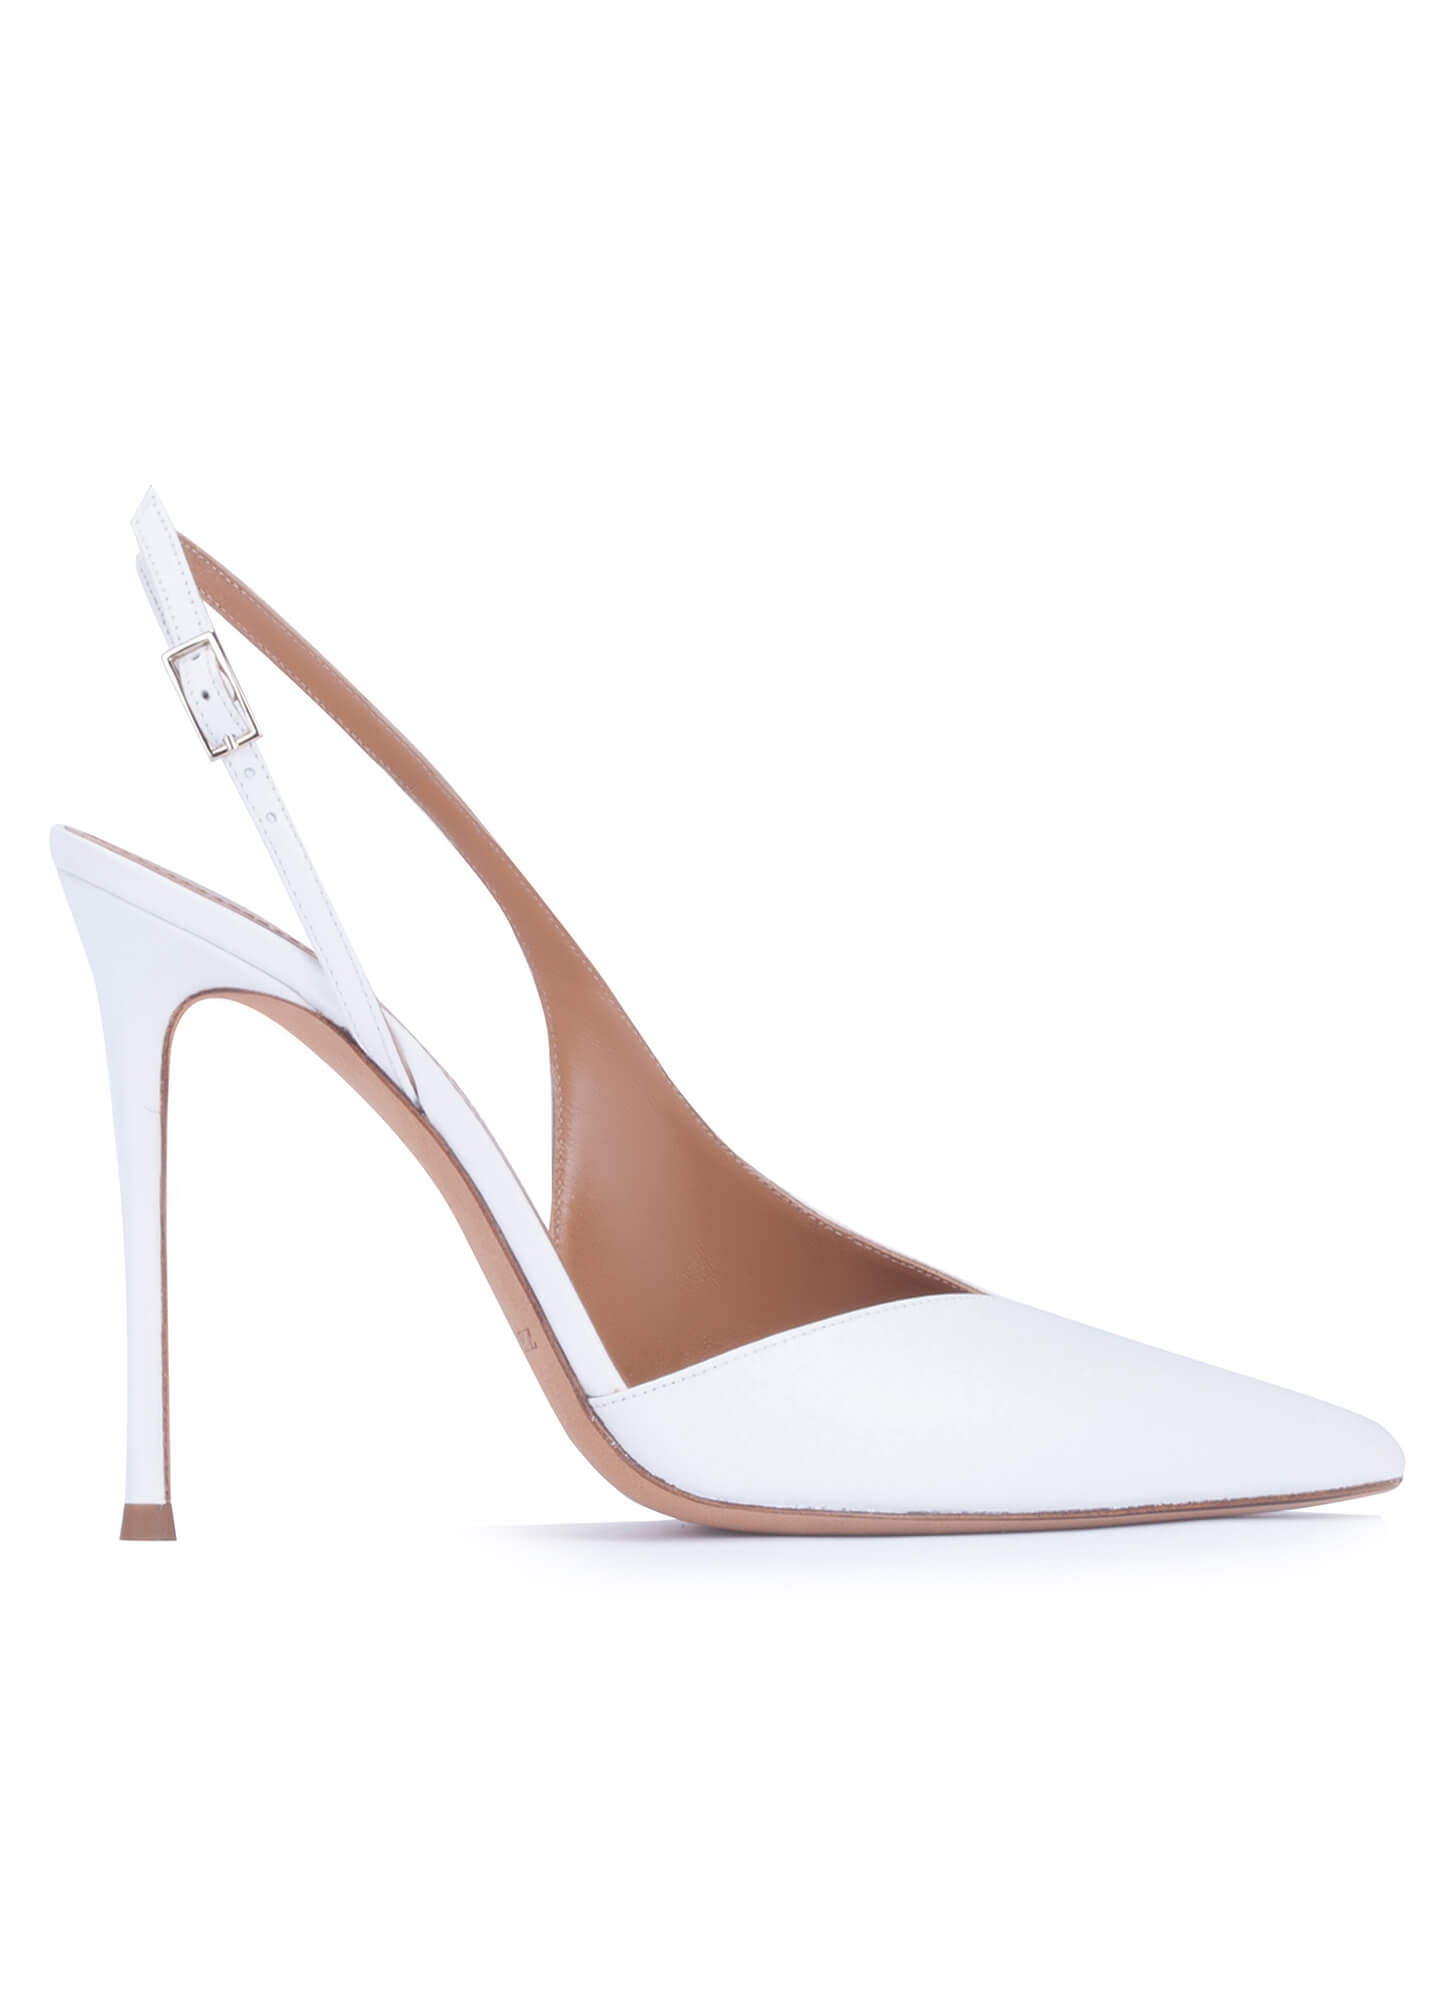 bf75241a7e Asymmetric heeled slingback pumps in white calf leather . PURA LOPEZ